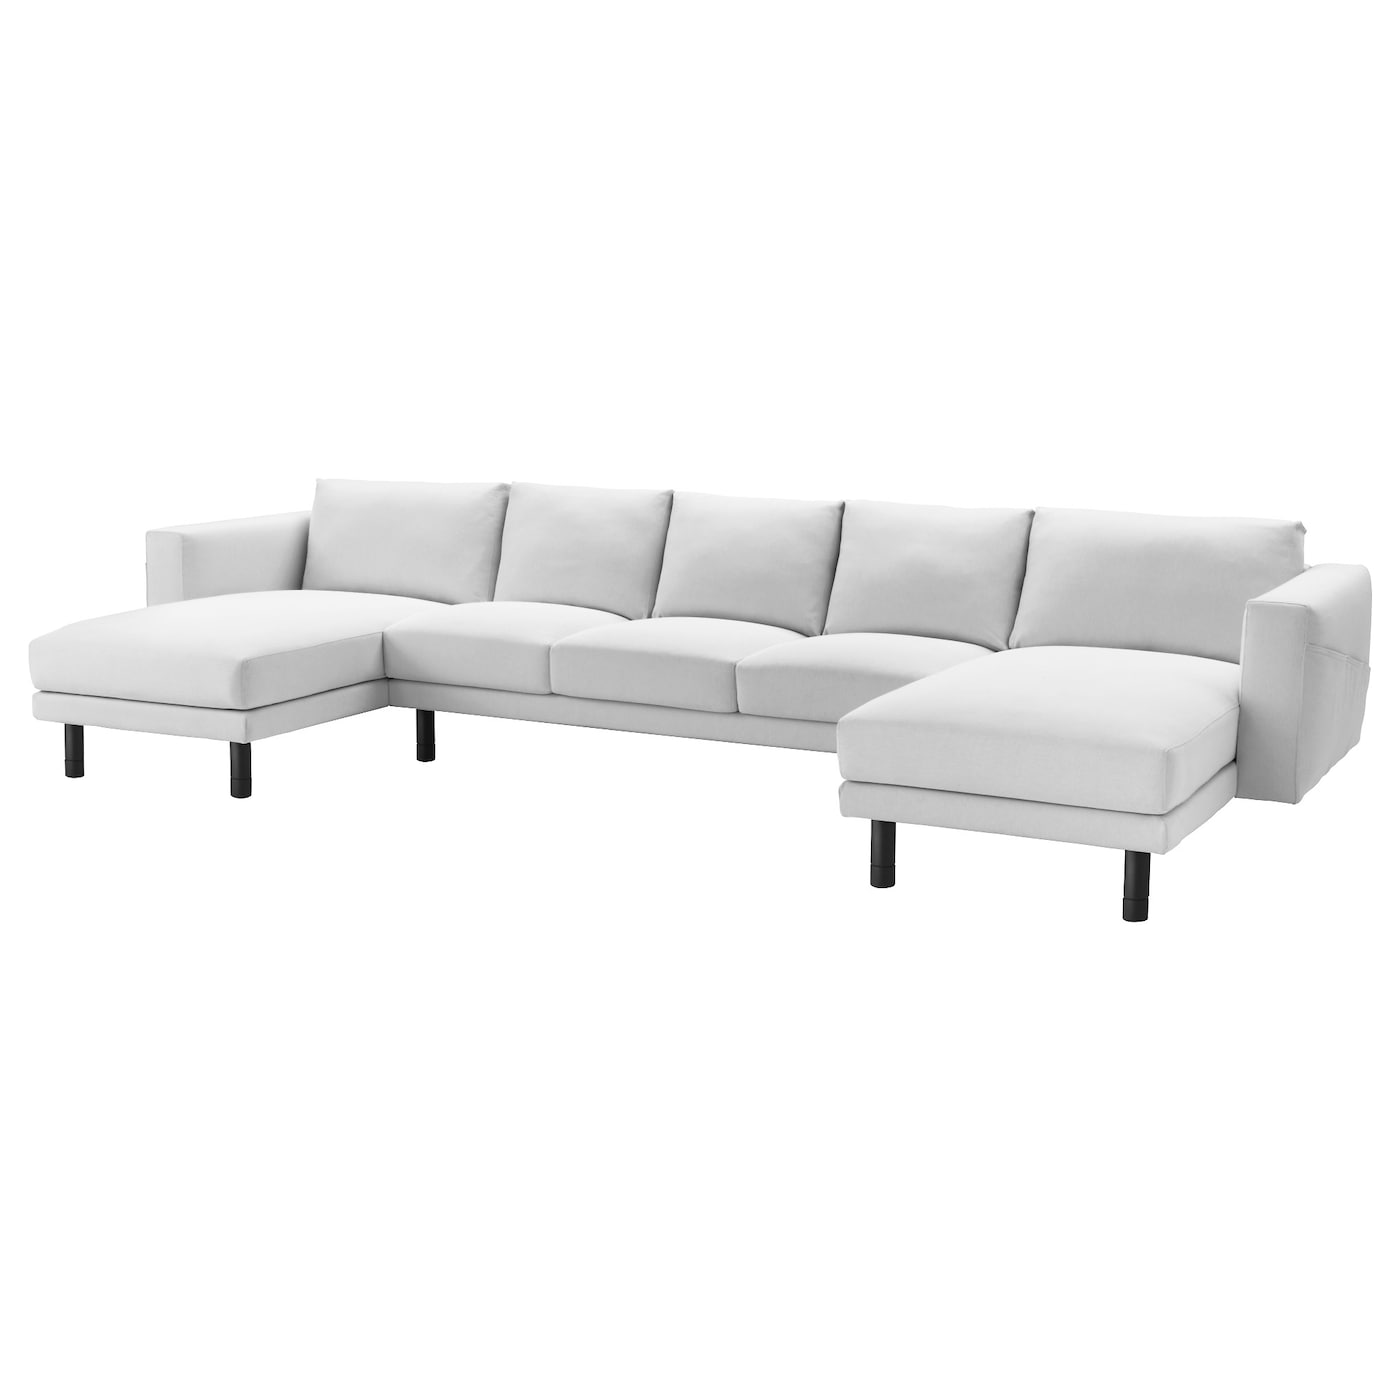 Norsborg 3 seat sofa with 2 chaise longues finnsta white for 2 seater sofa with chaise